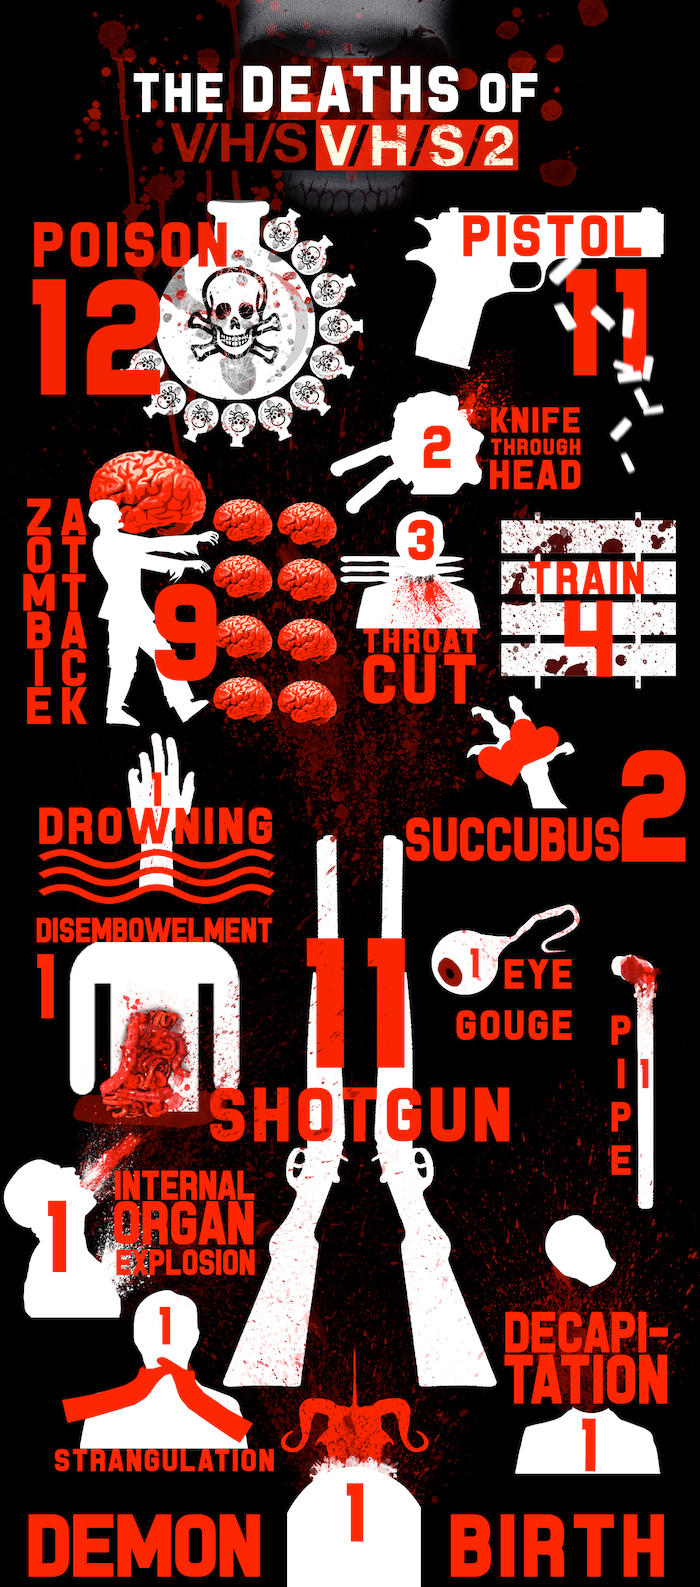 VHS-Horror-Movie-Death-Infographic